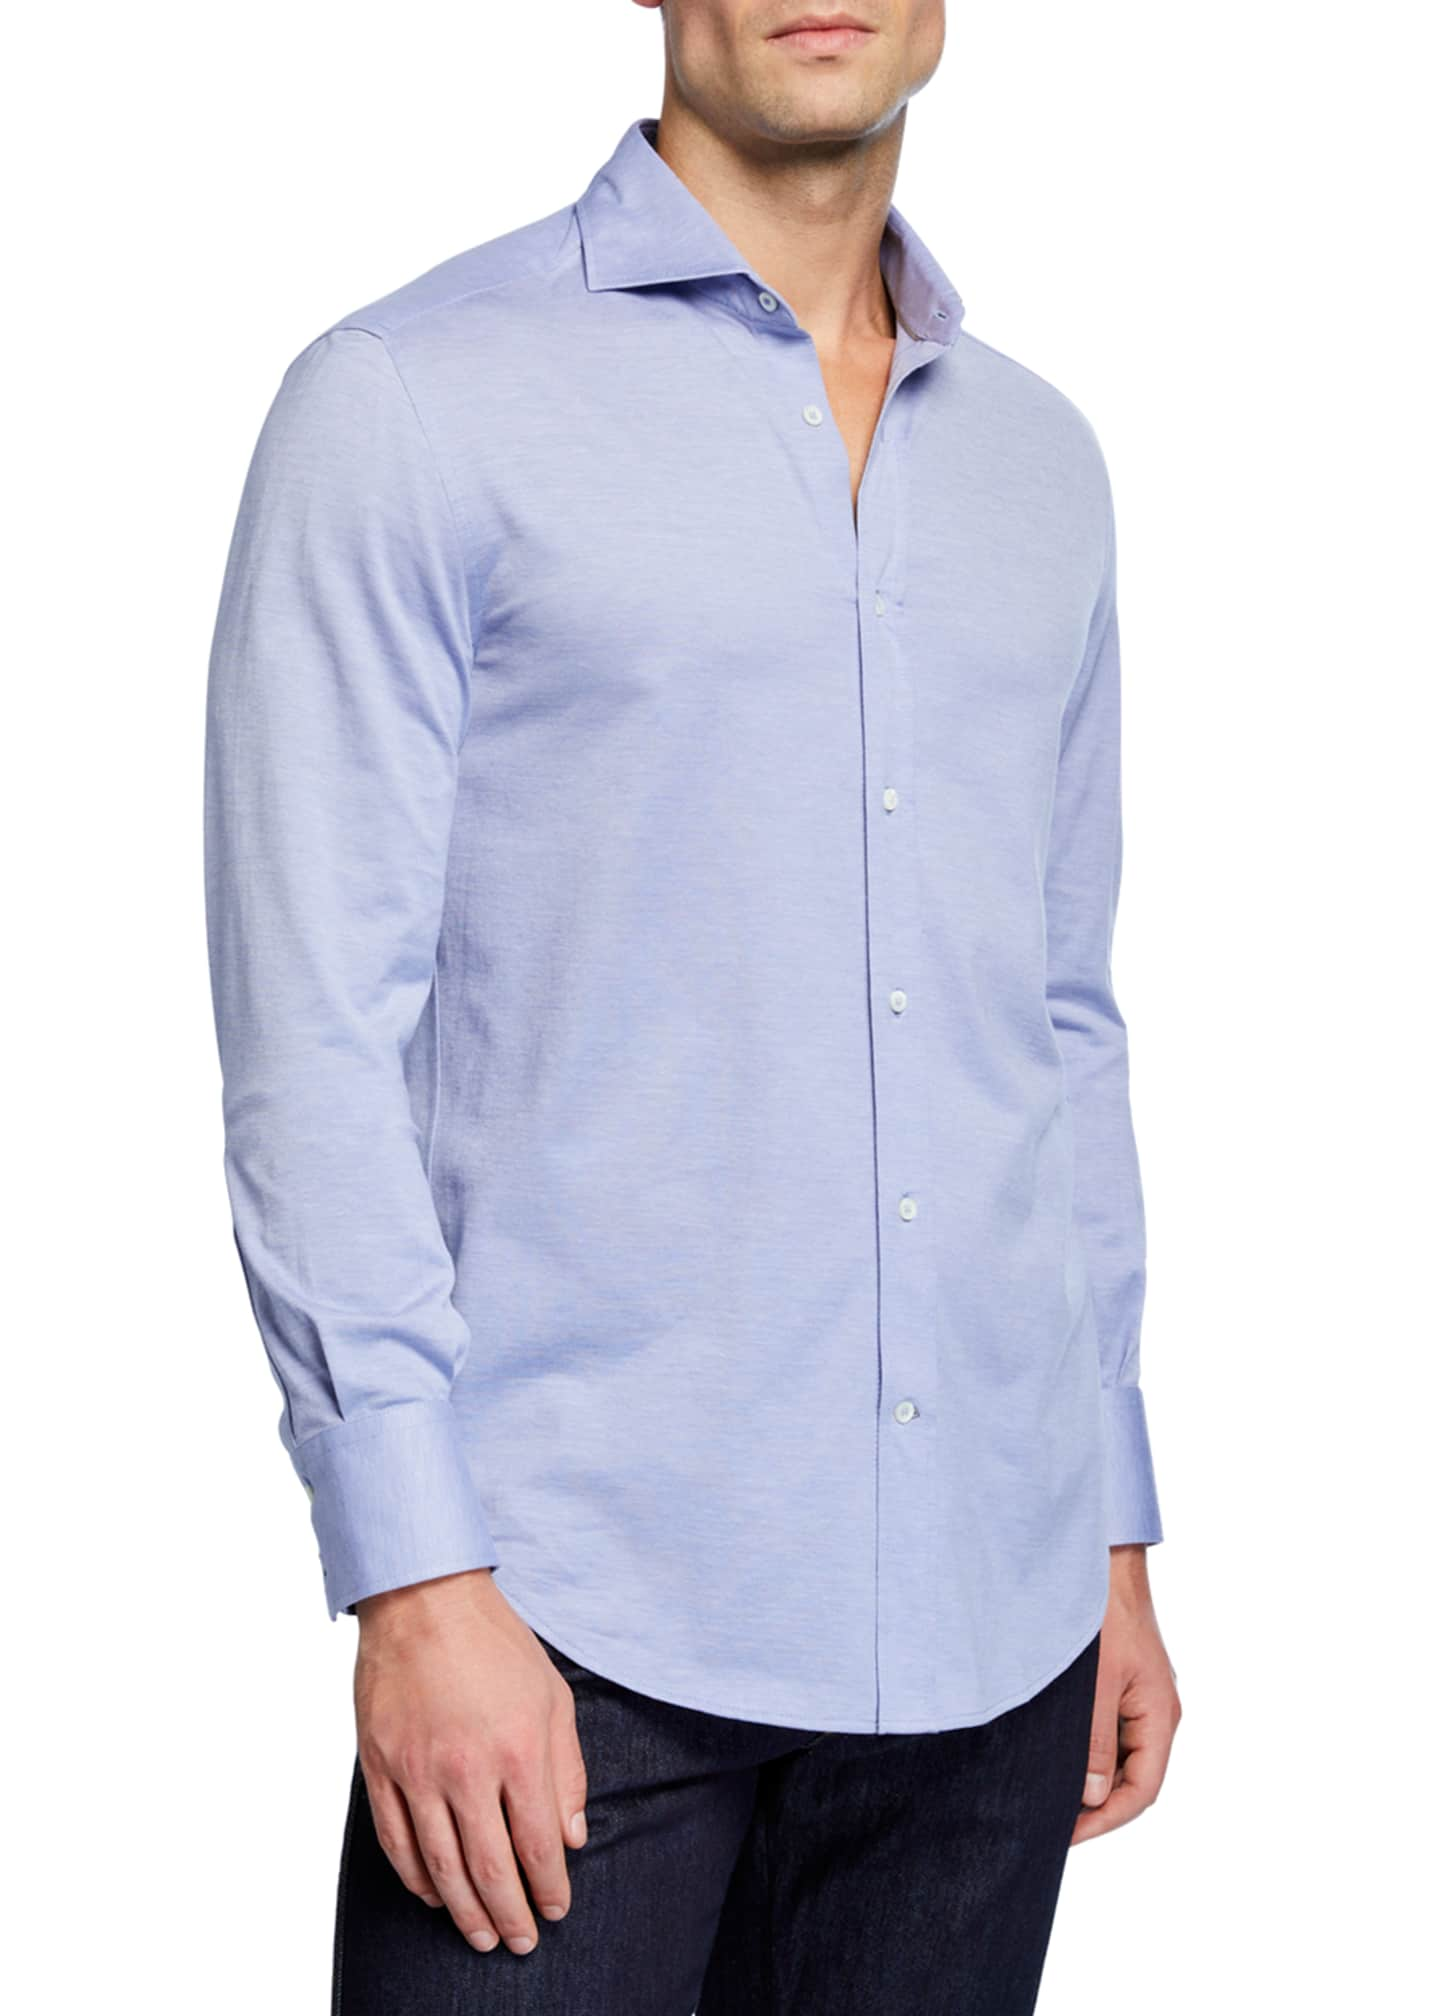 Brunello Cucinelli Men's Basic Fit Pique Sport Shirt